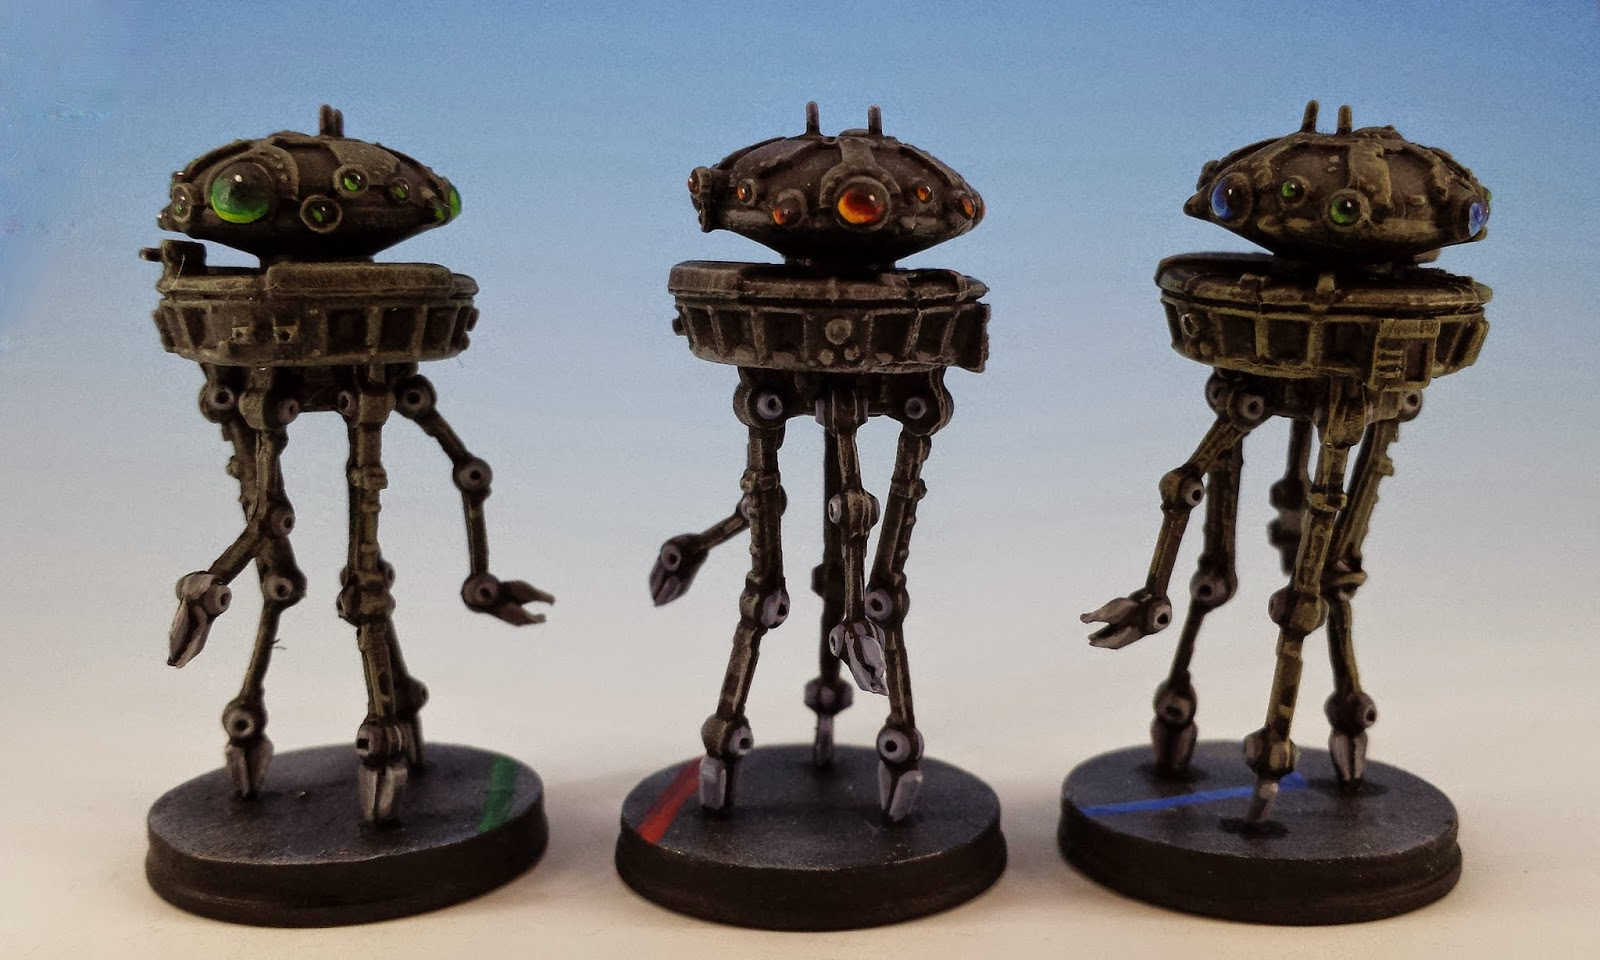 Probe Droid, Fantasy Flight Games (2014, sculpted by Benjamin Maillet, painted by M. Sullivan)